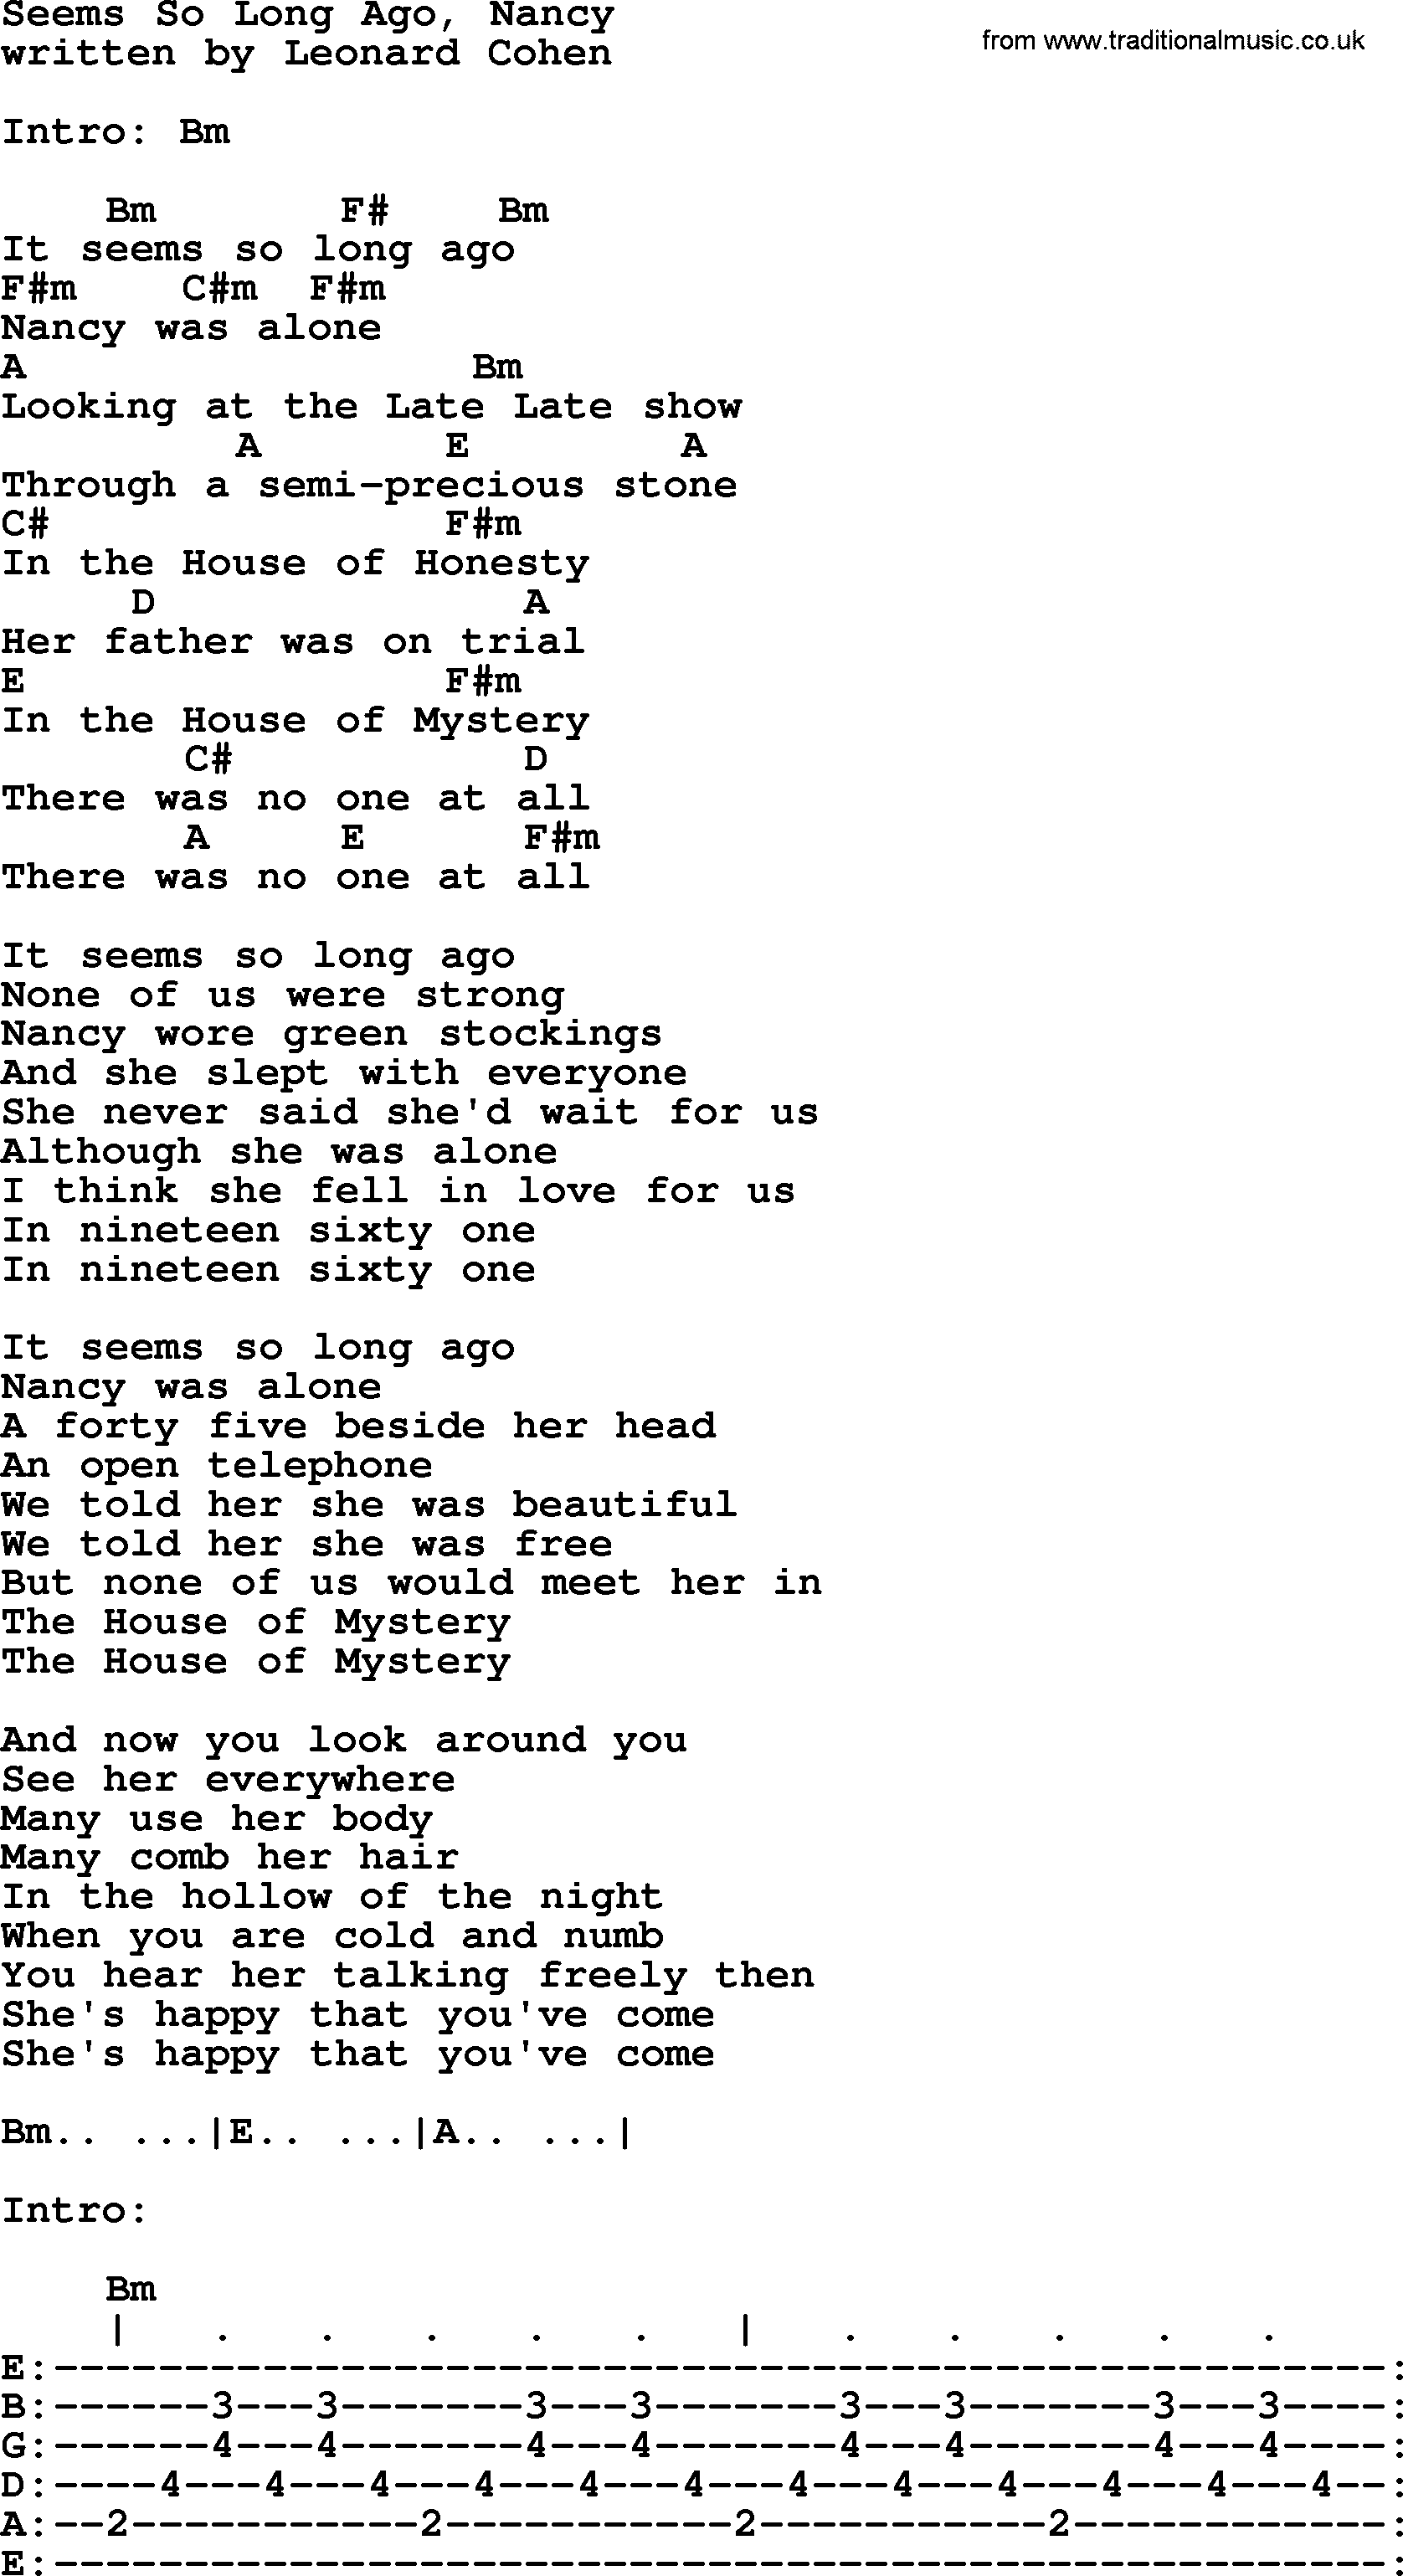 Leonard cohen song seems so long ago nancy lyrics and chords leonard cohen song seems so long ago nancy lyrics and chords hexwebz Image collections